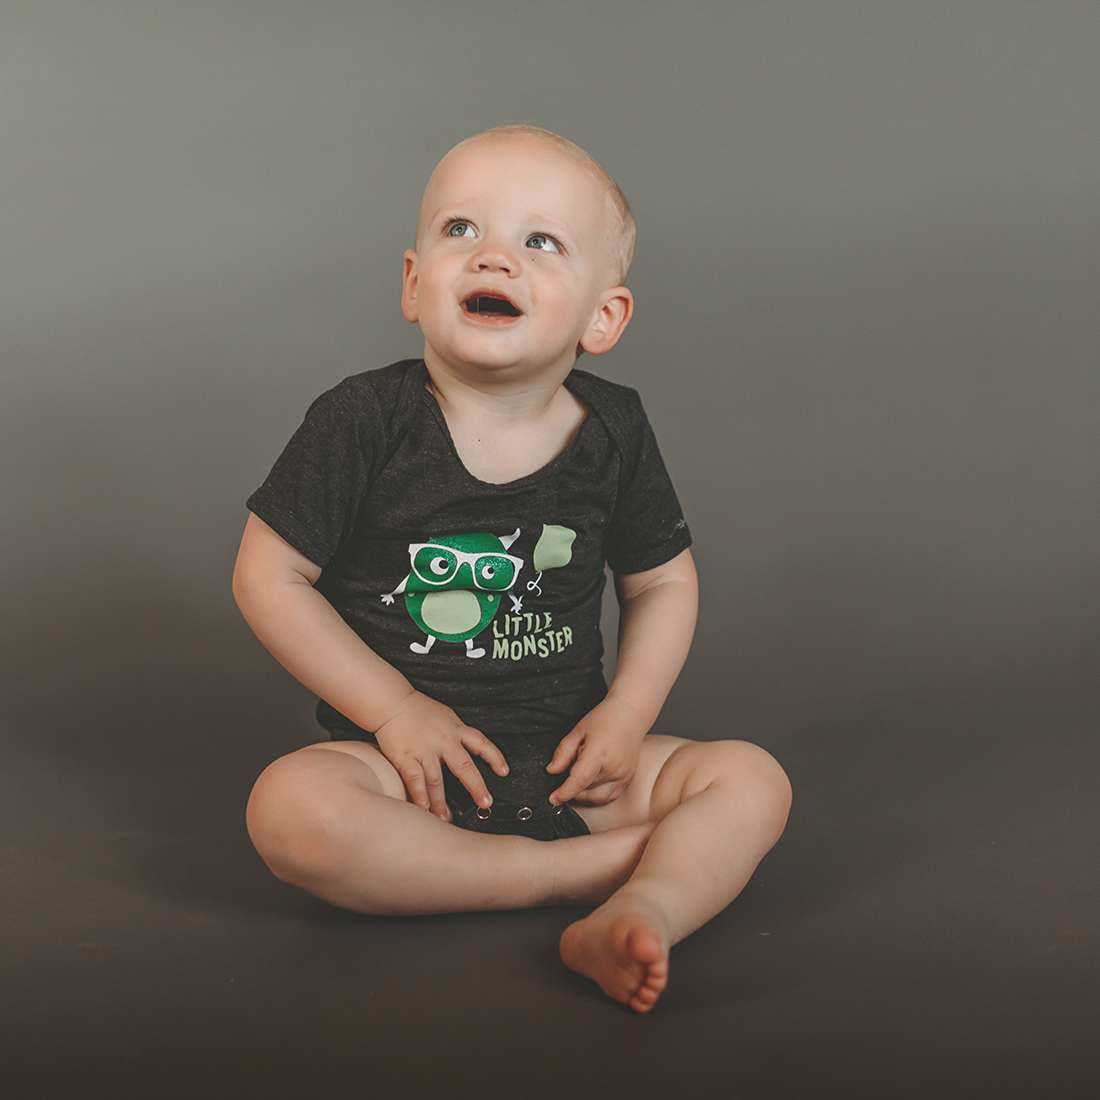 Little Monster baby bodysuit - wholesale - Sweetpea and Co.